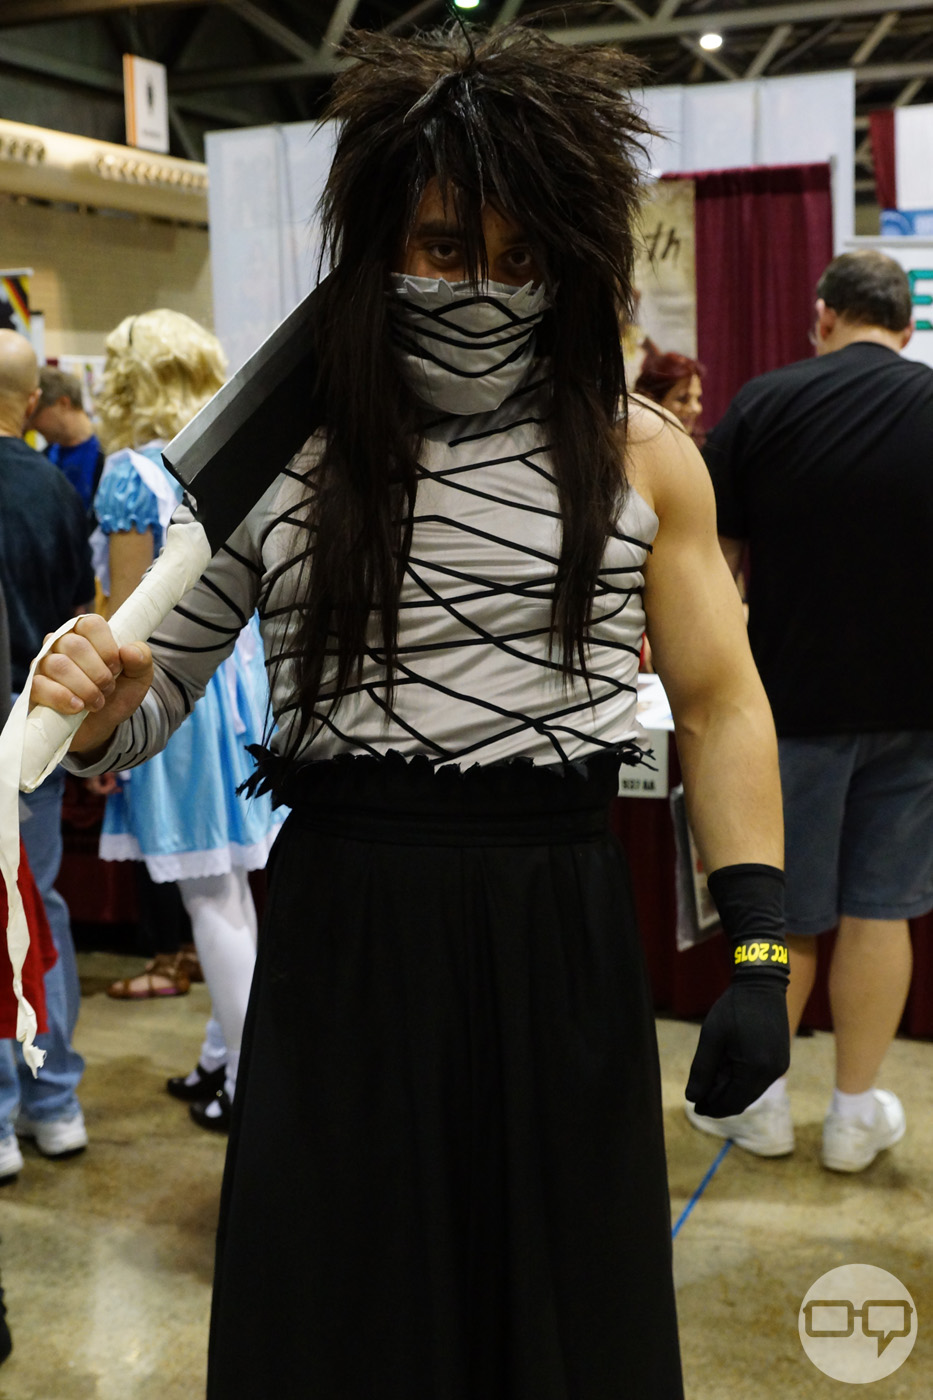 Planet-Comicon-2015-ProNerd-Cosplay-D1-11